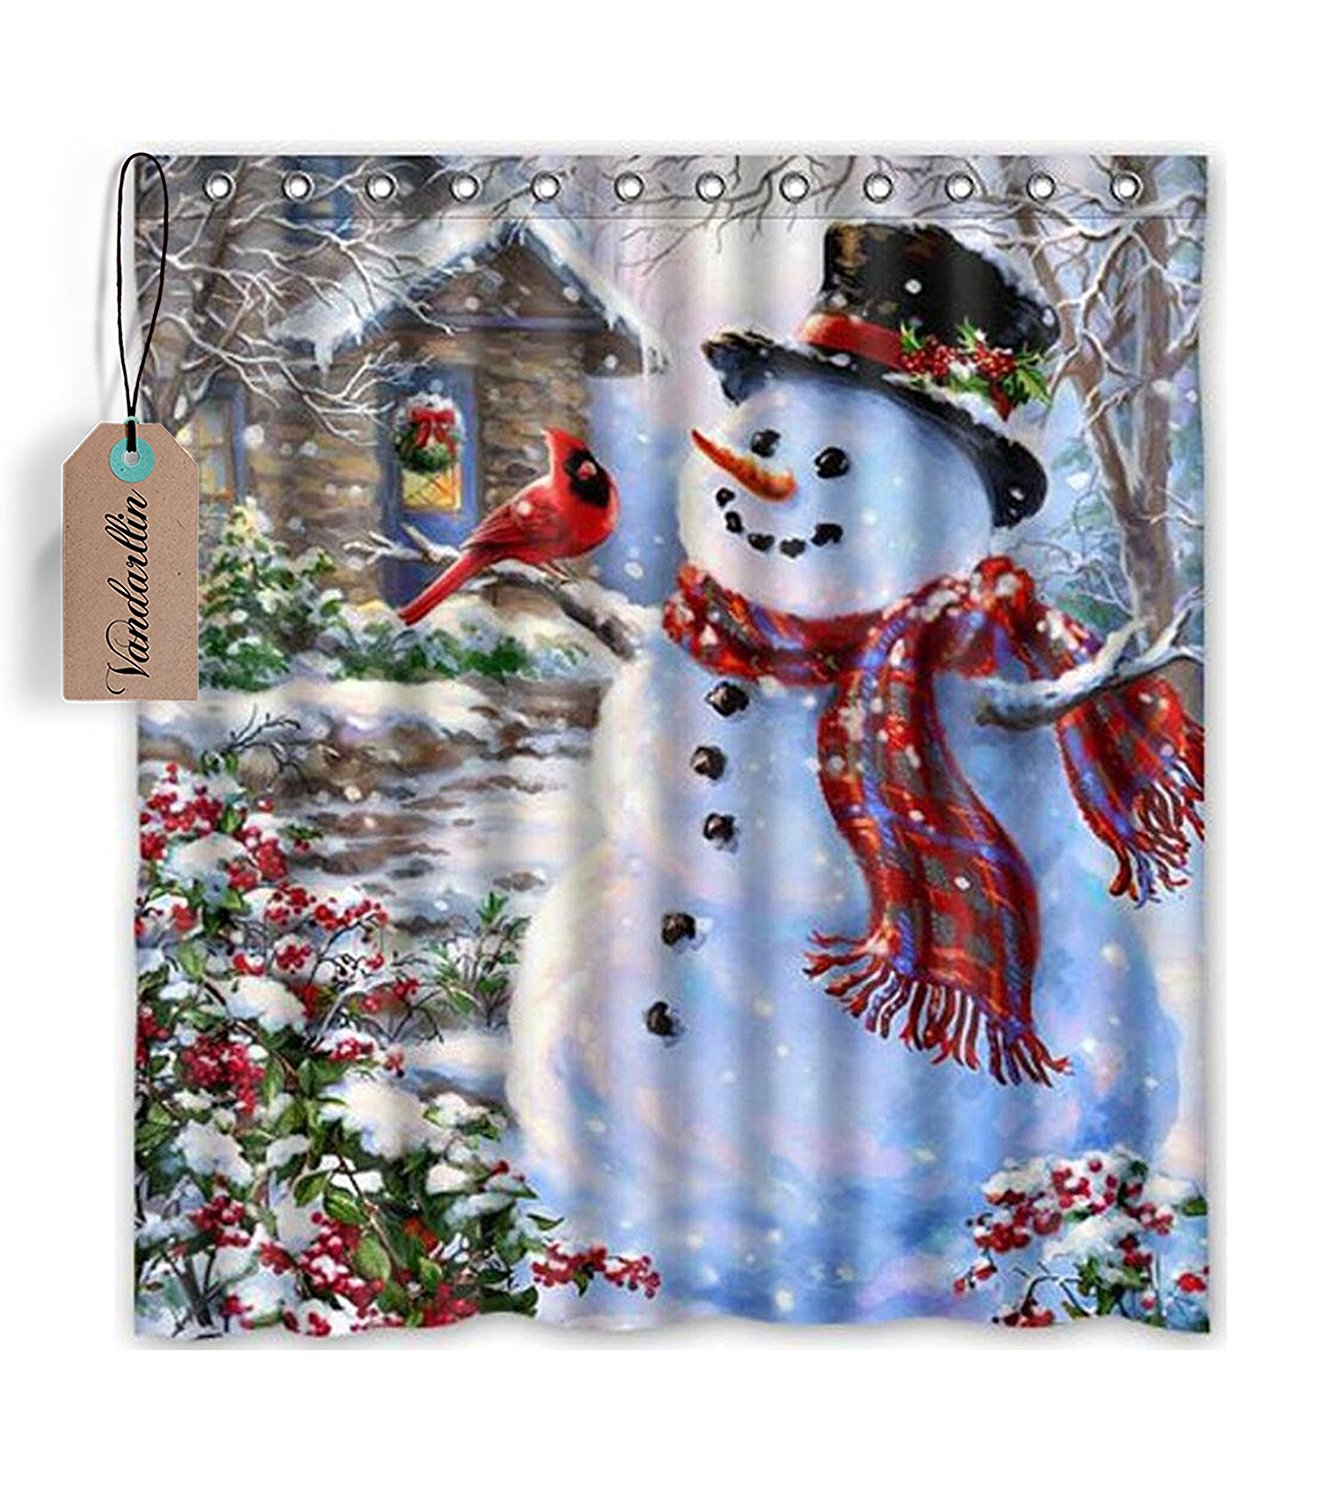 Buy Snowman Christmas Holiday Winter Fabric Shower Curtain